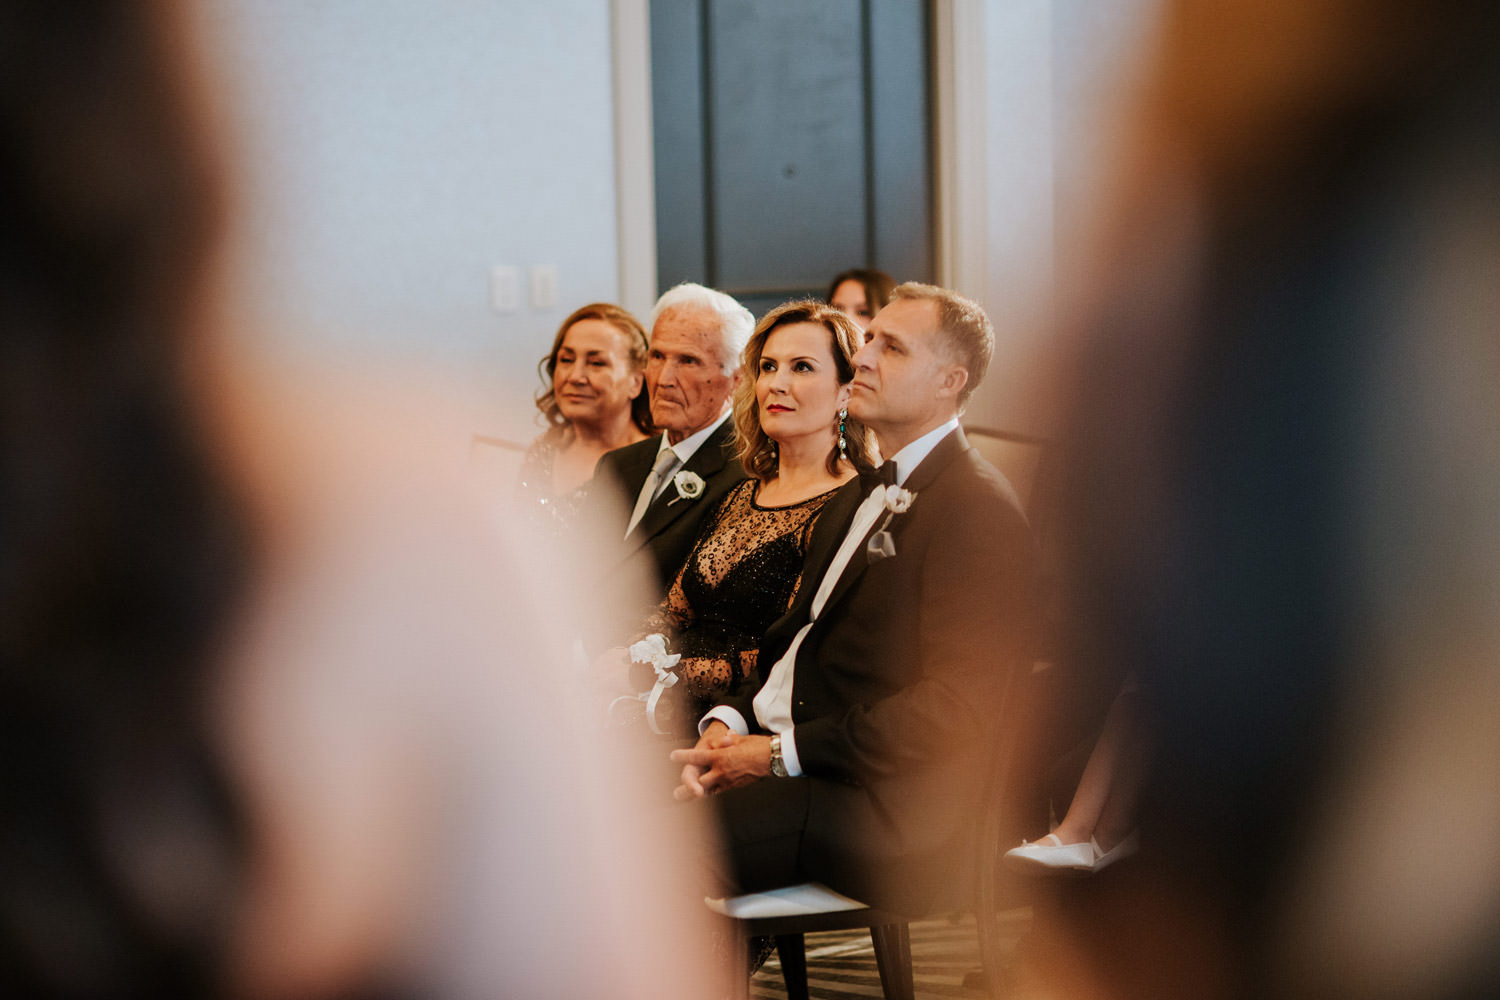 Parents of the bride looking at their daughter during the wedding ceremony at Hotel Gray in Chicago